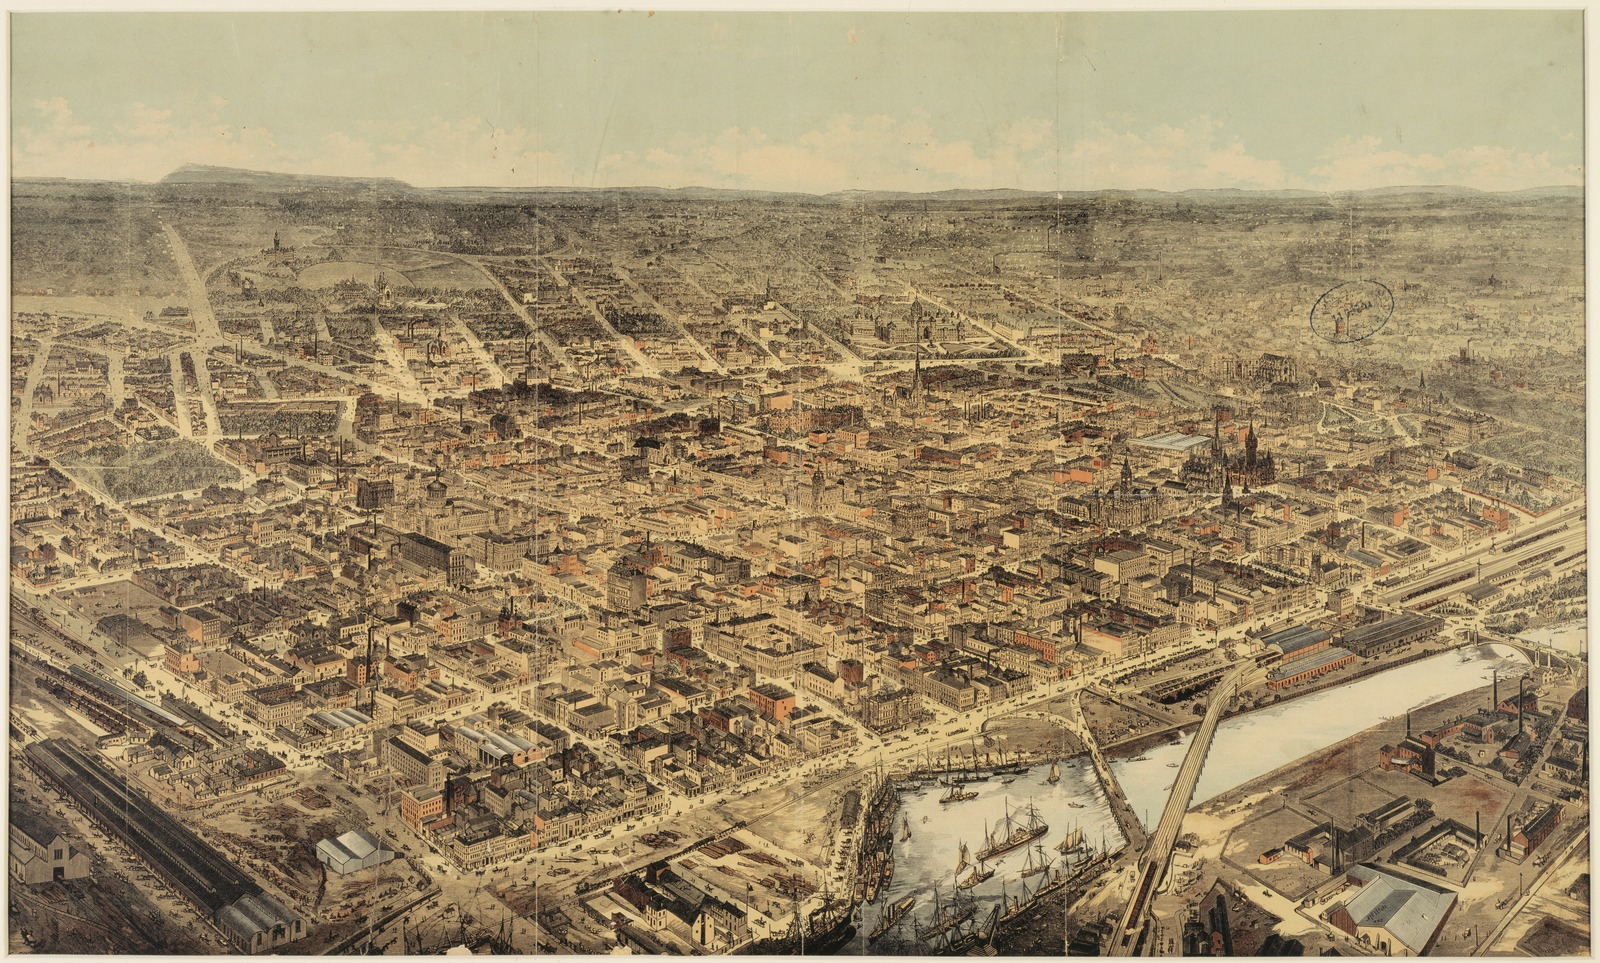 A bird's eye view of Melbourne in 1882